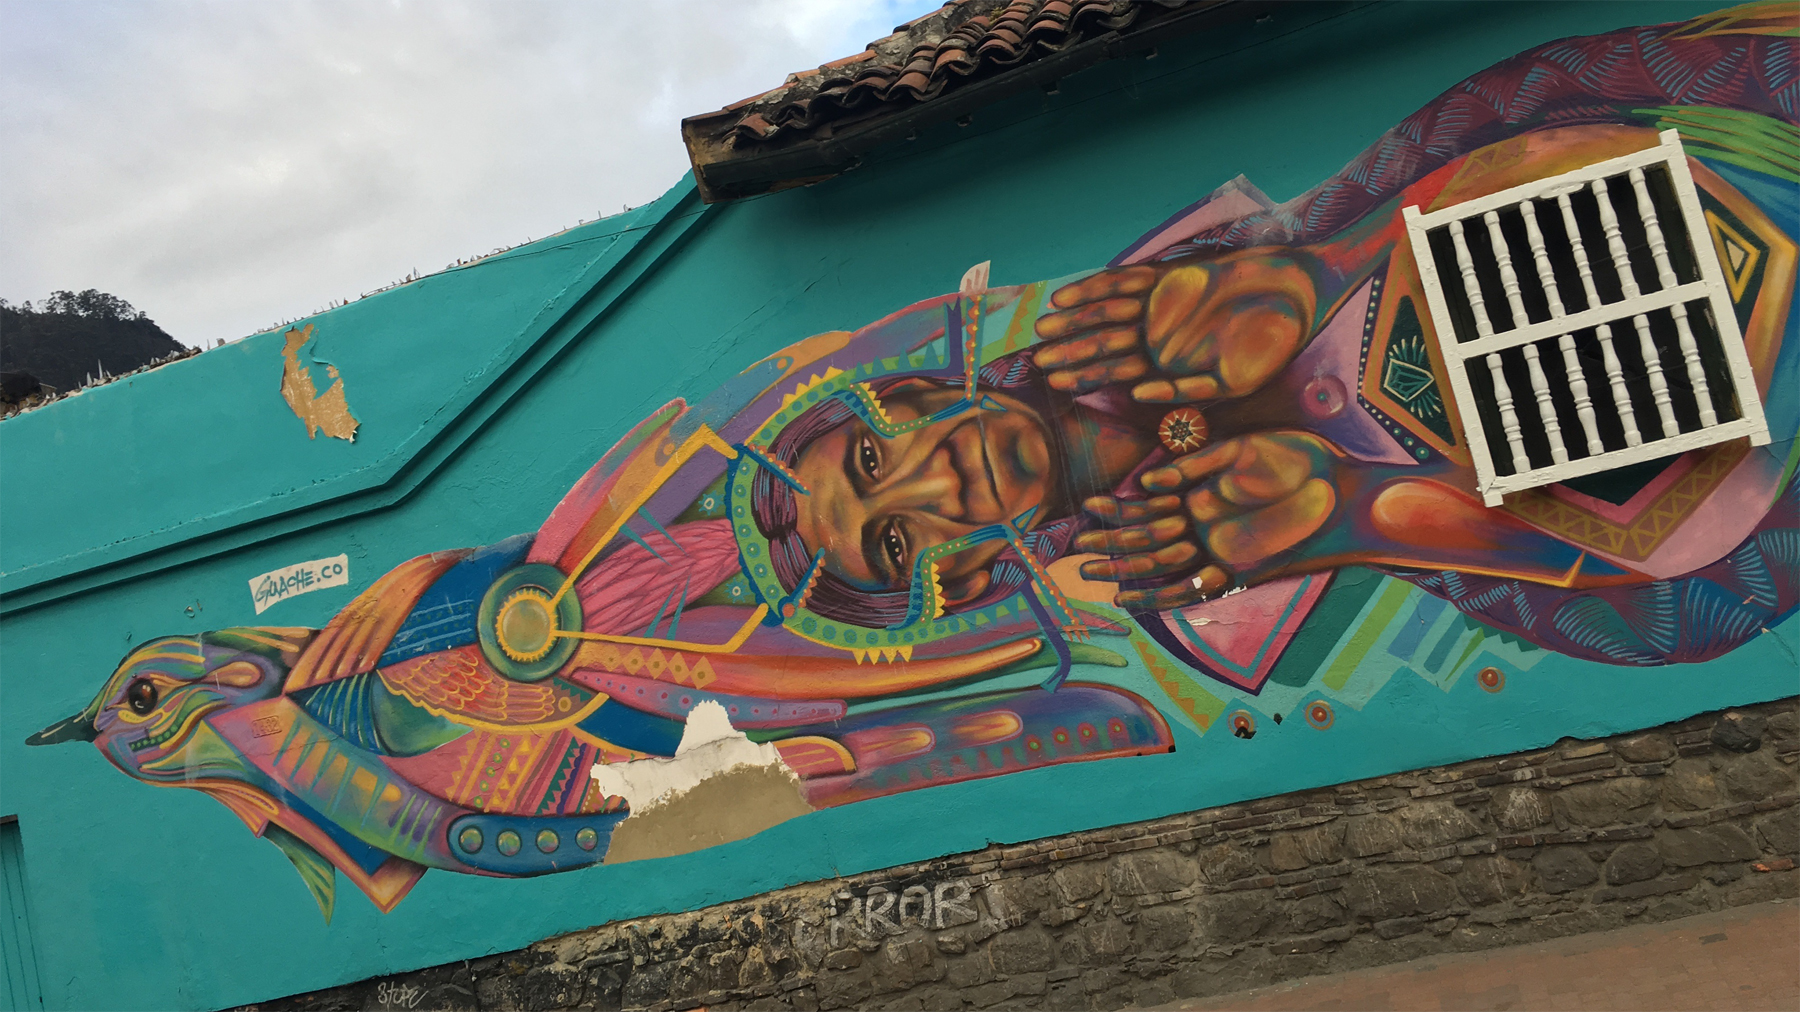 Guache's artwork mixes styles of Latin America's traditional muralism with graffiti and street art.